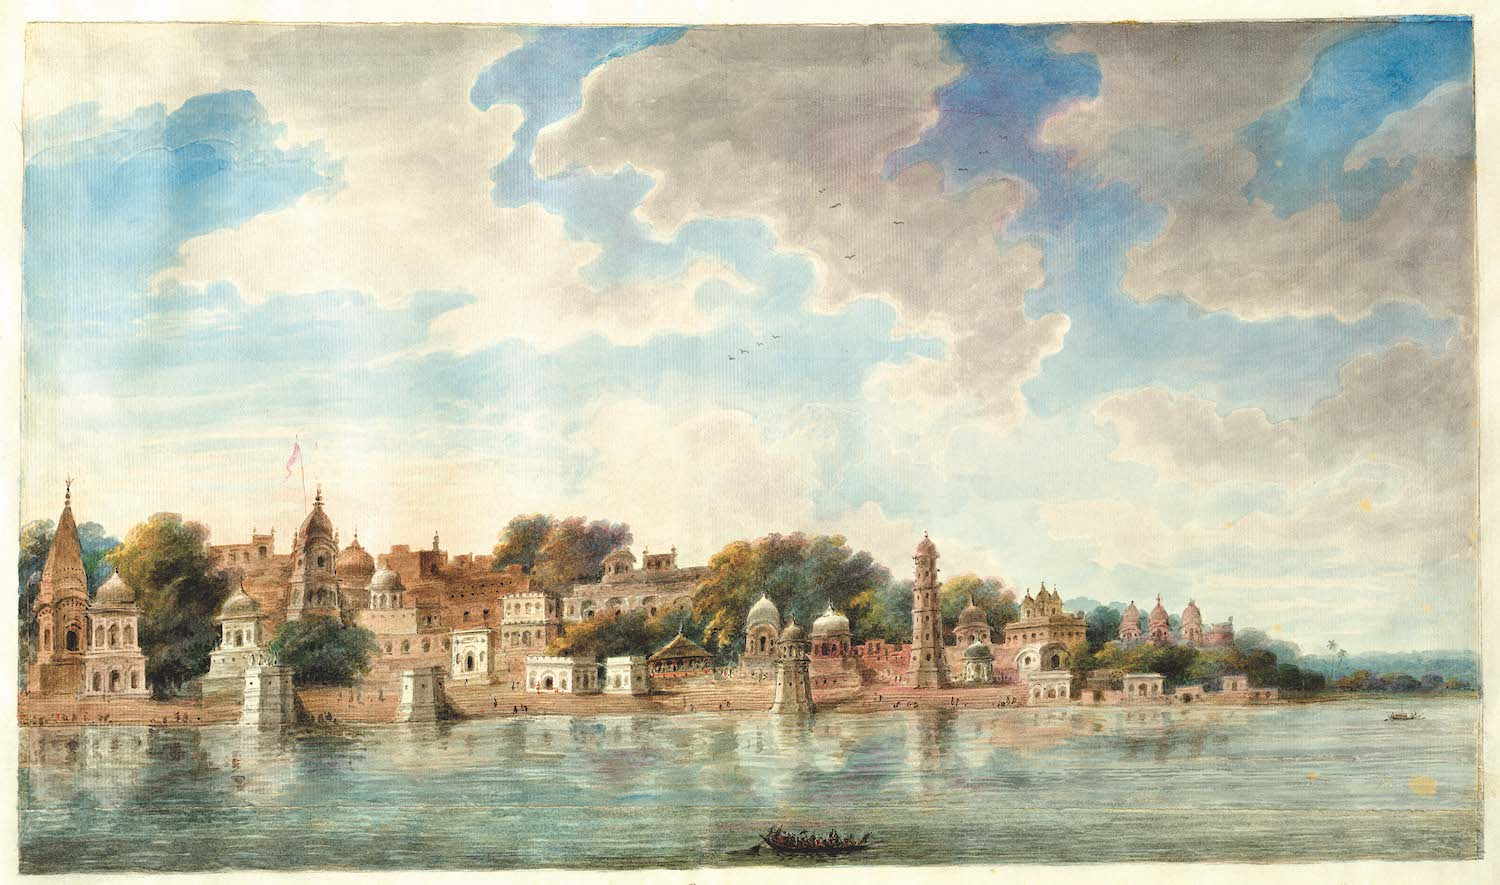 The ghats on the River Jumna at Mathura.